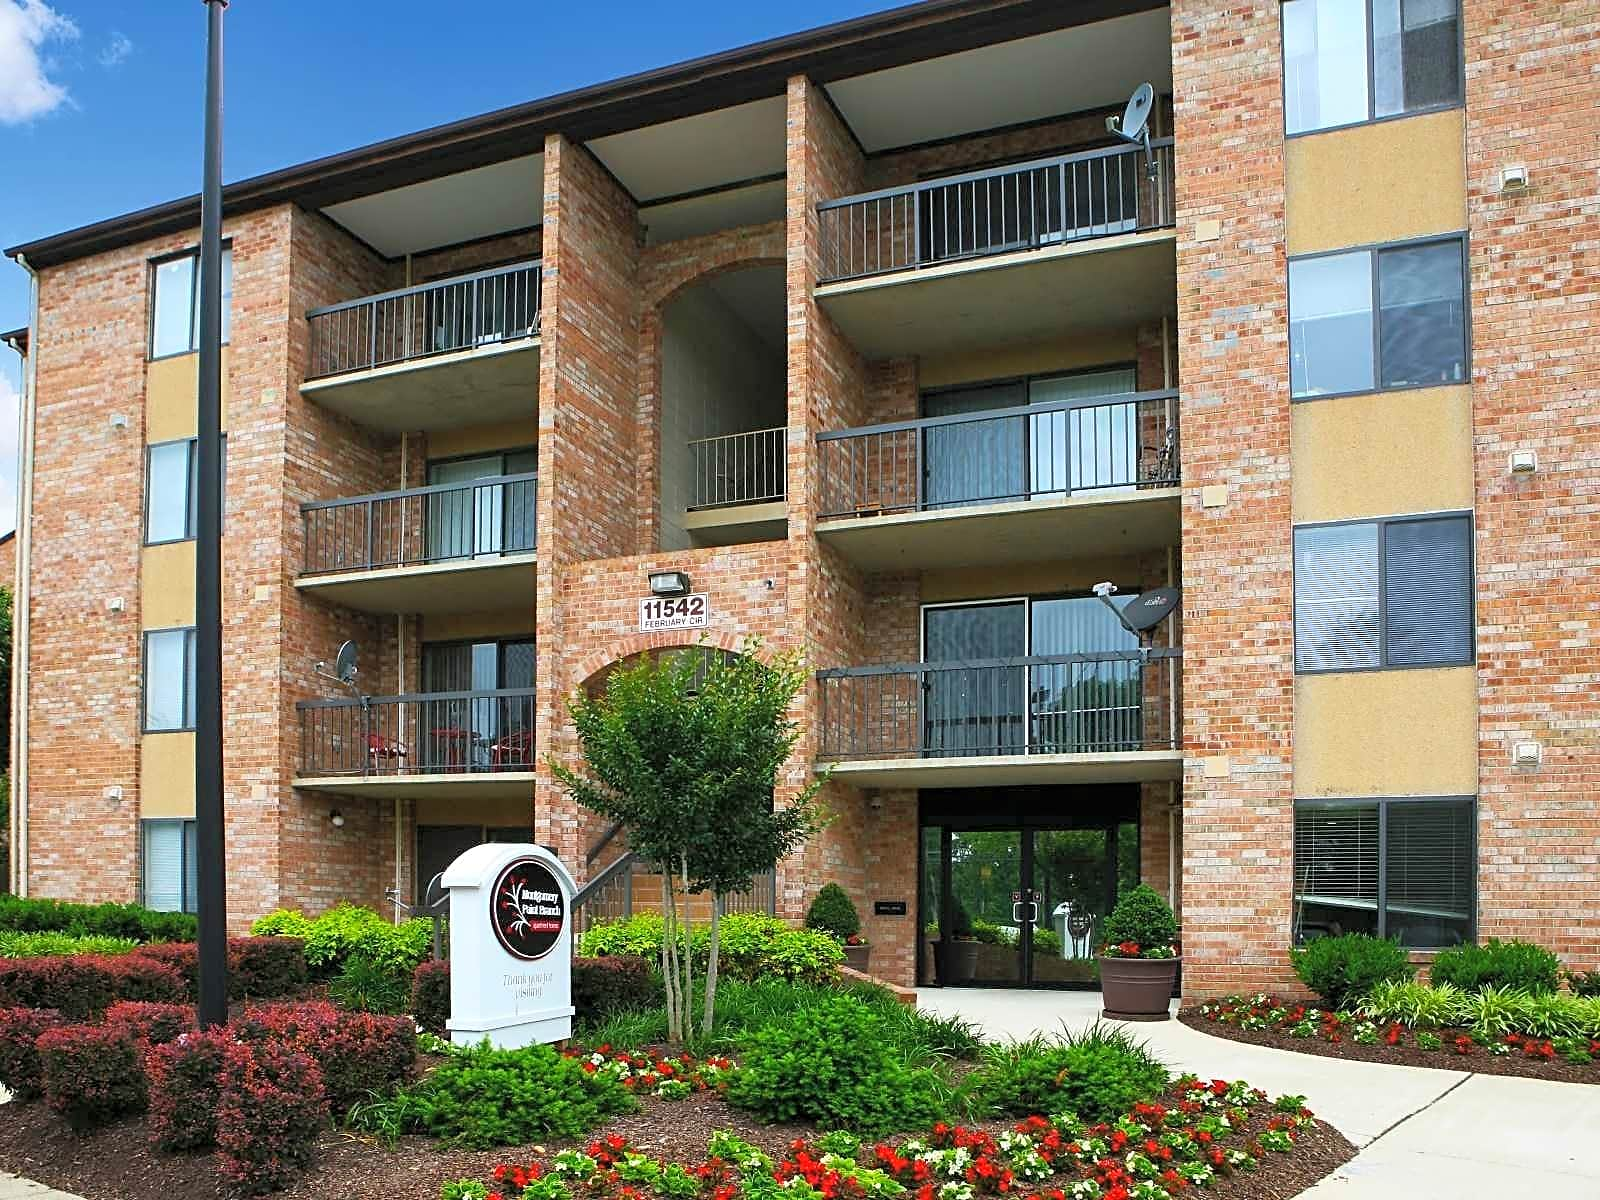 montgomery paint branch apartments silver spring md 20904